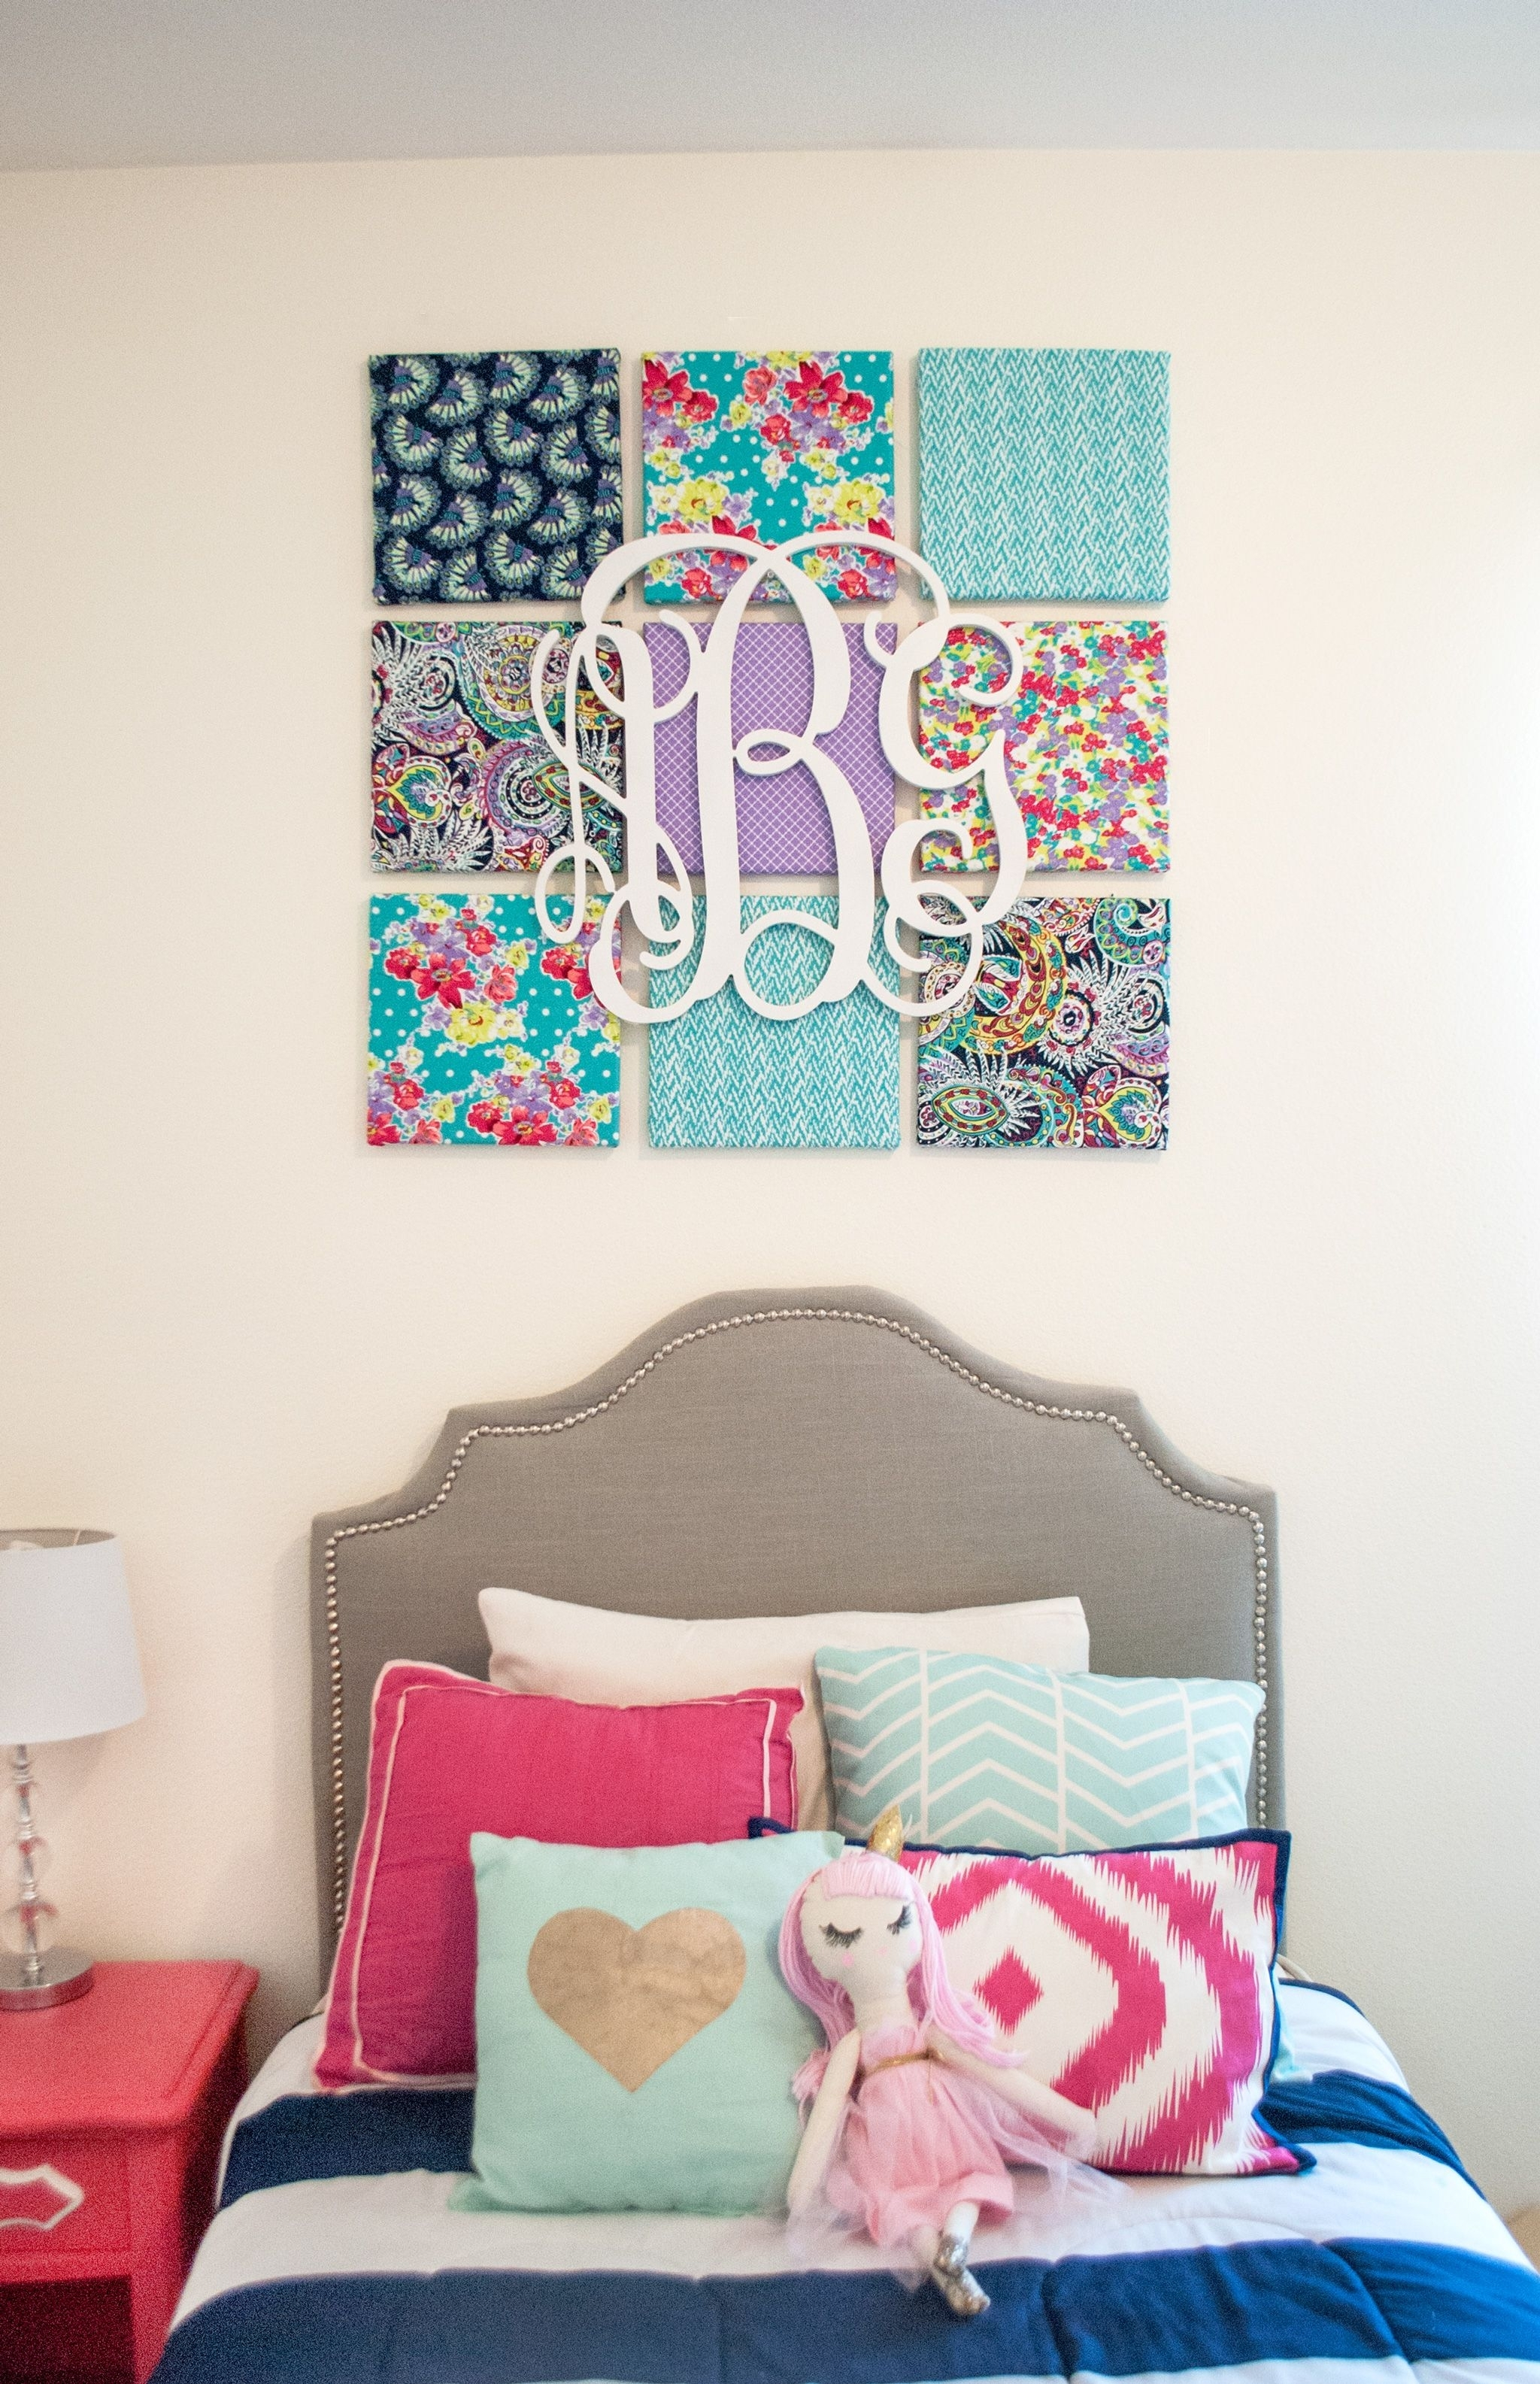 Diy Fabric Wall Art | Children's Room Diy Ideas | Pinterest Intended For Newest Monogram Wall Art (View 2 of 20)